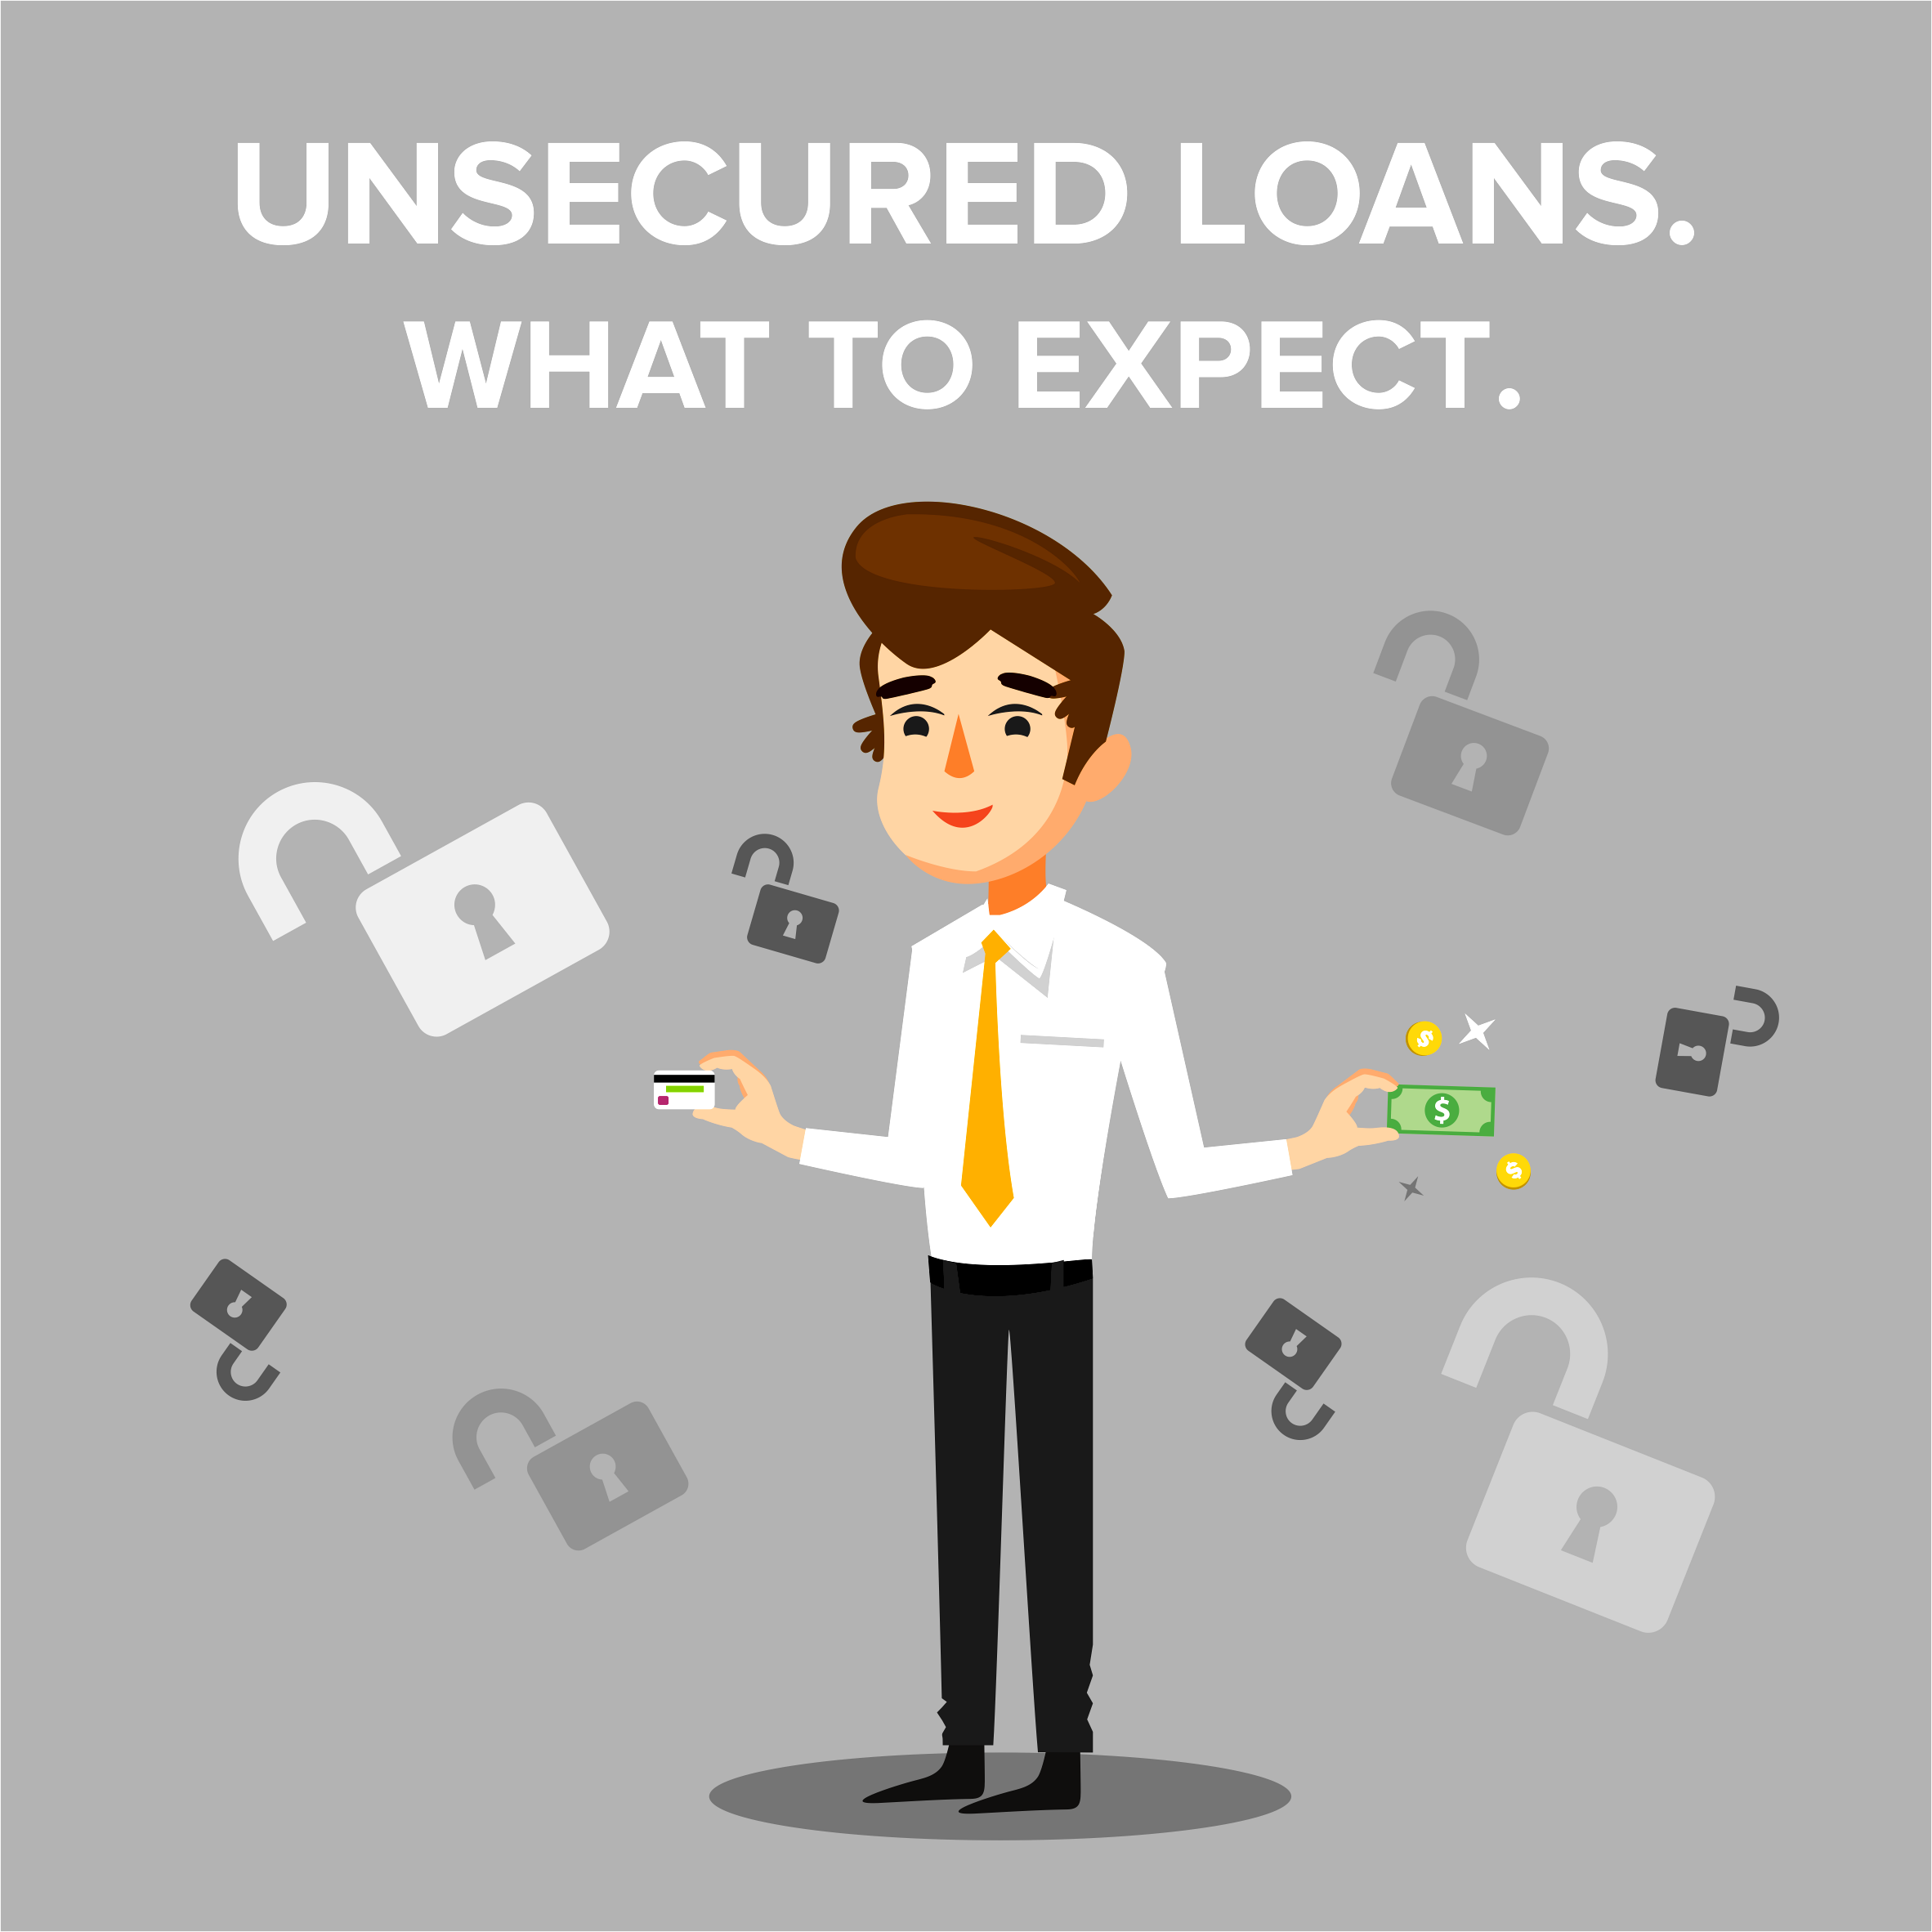 Unsecured Loans. What to Expect